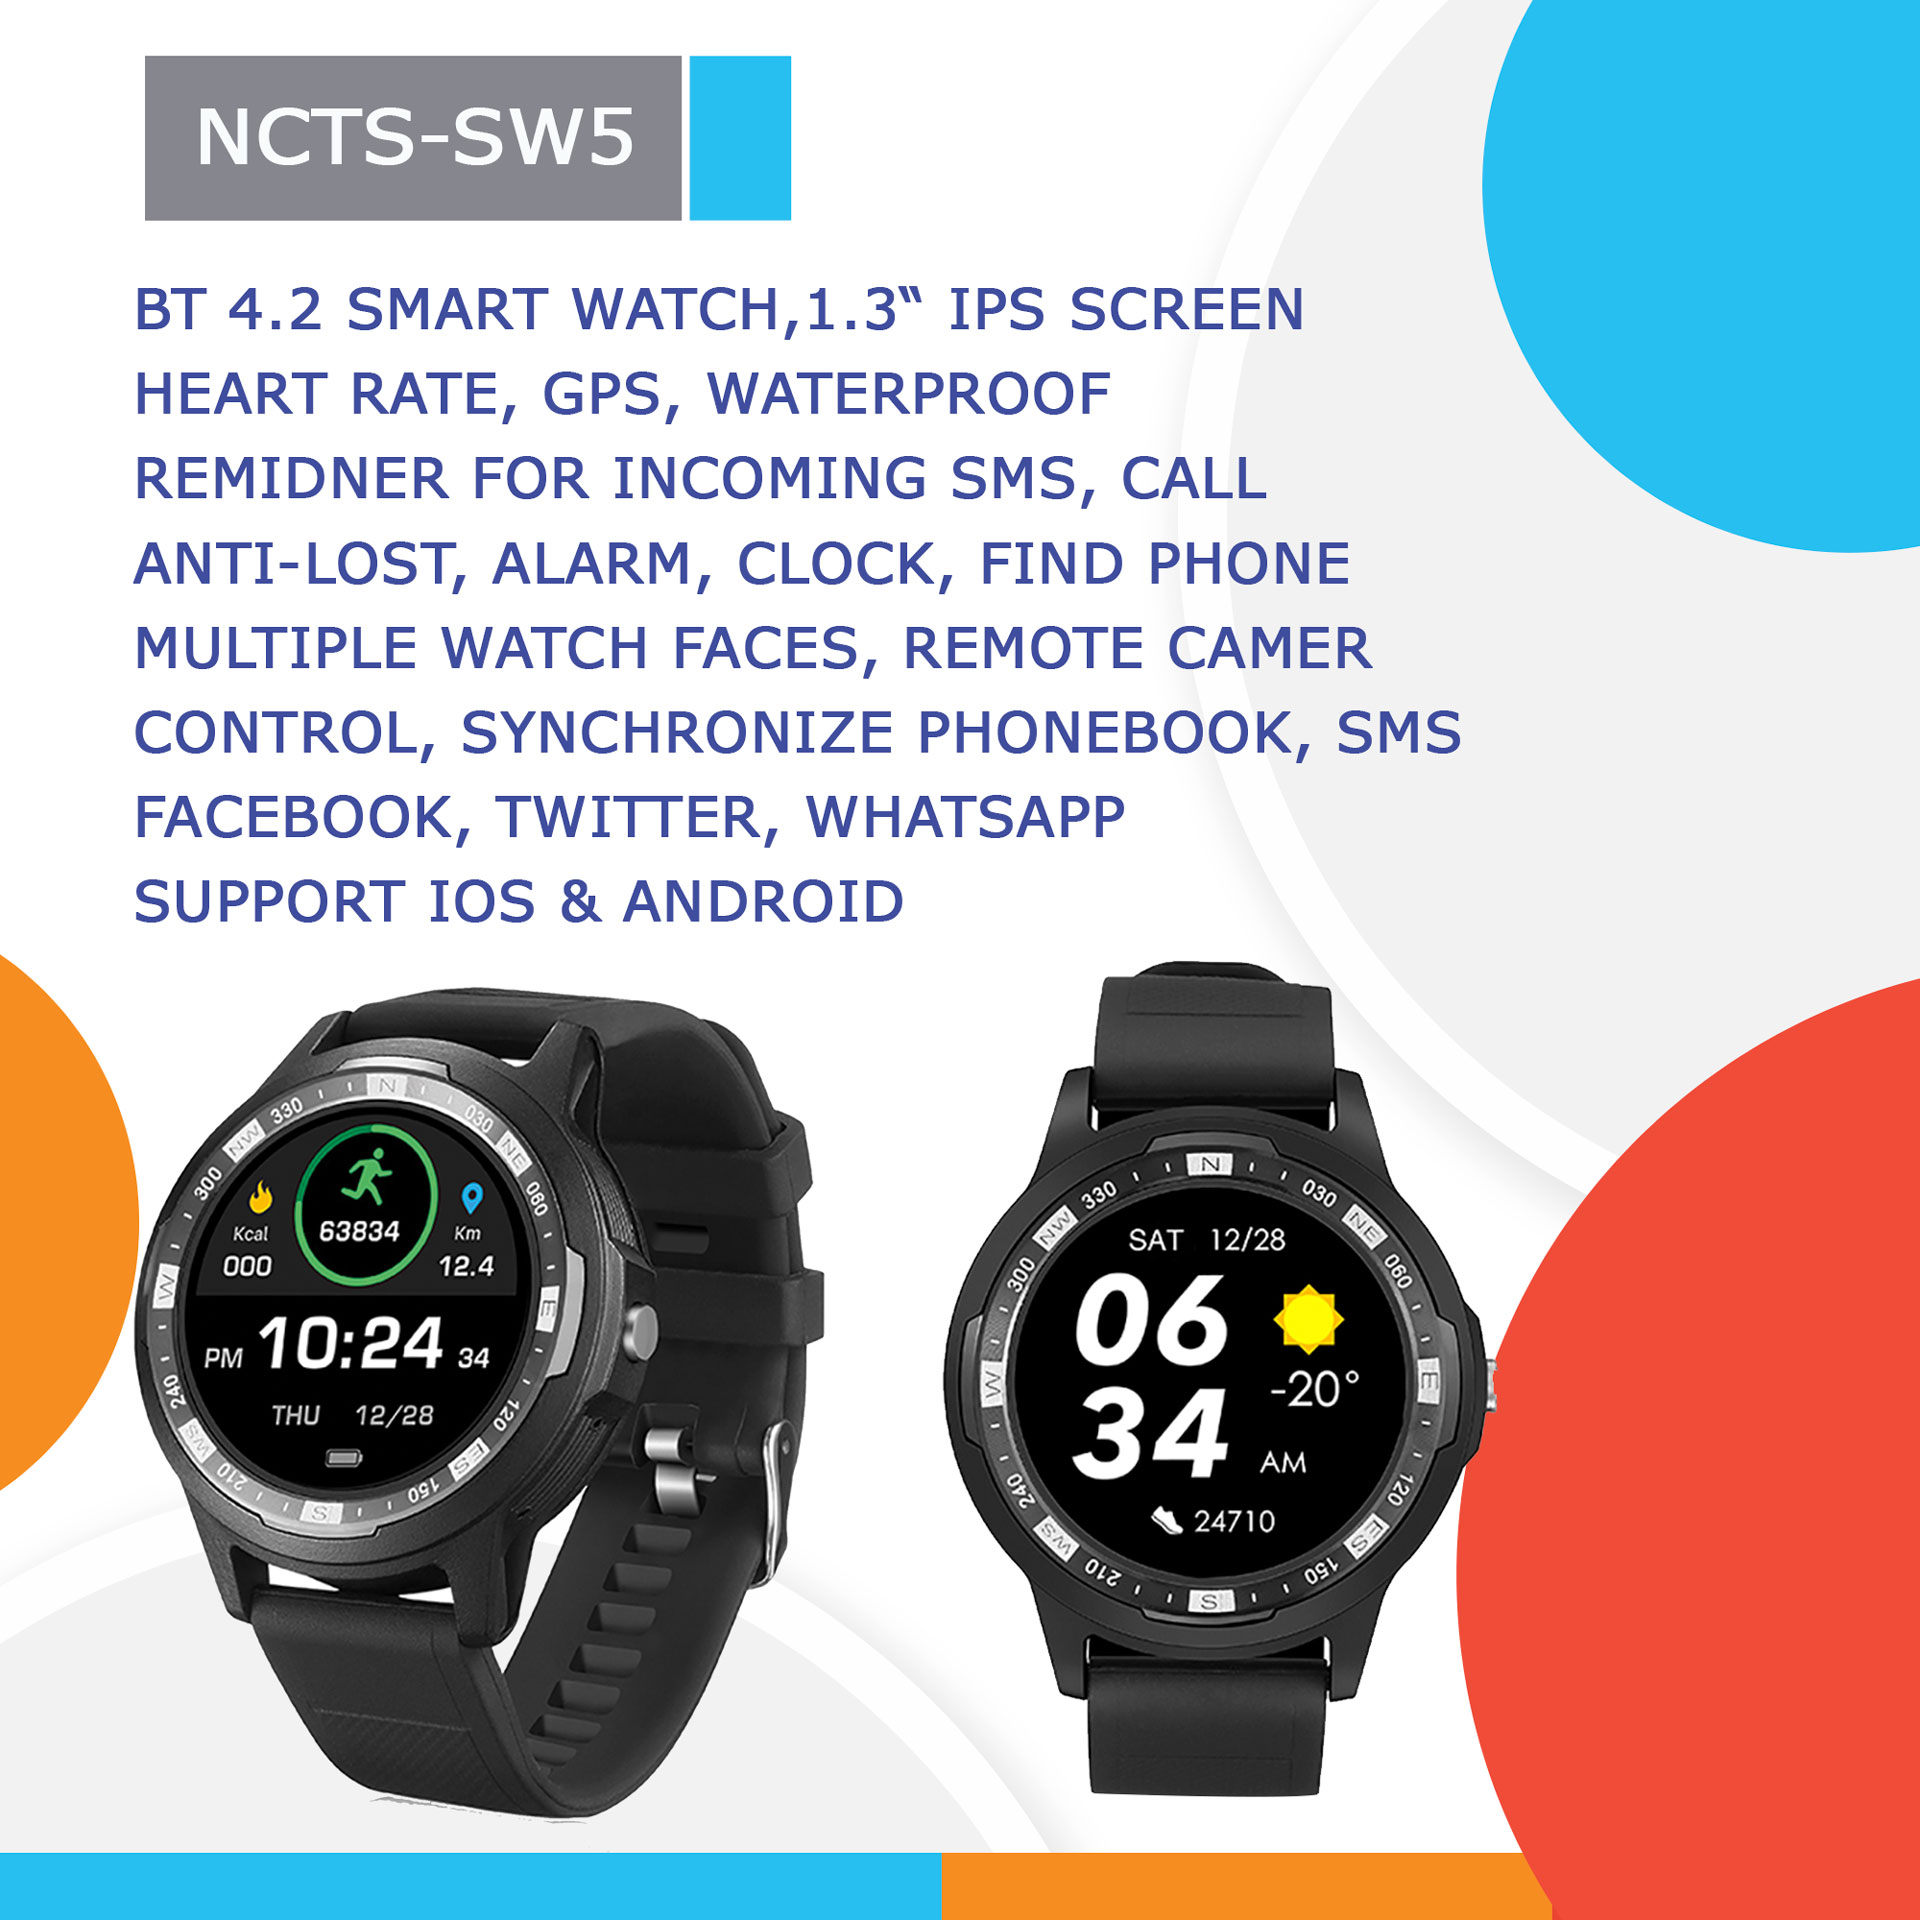 NCTS-SW5